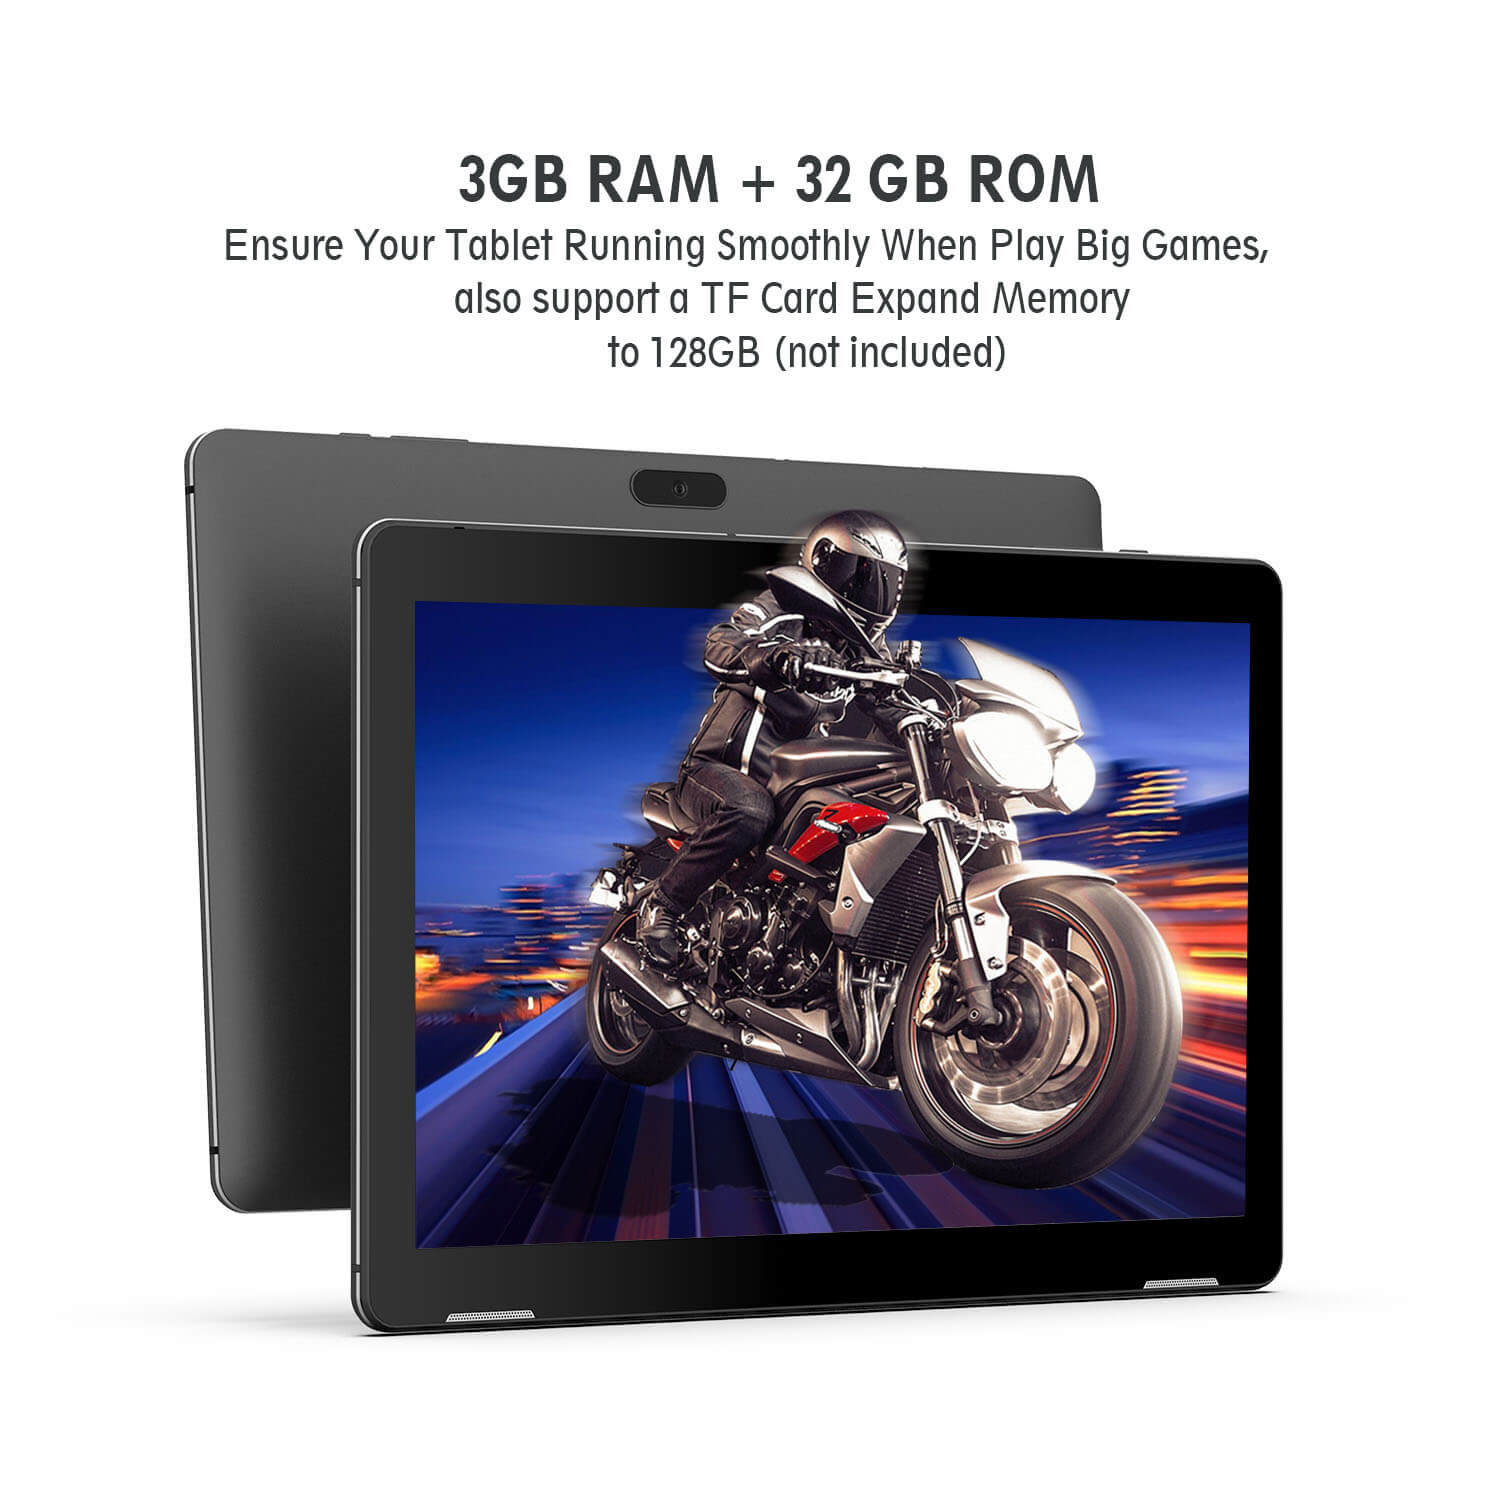 Rugged SA Winnovo T10 LTE 3GB 32GB Tablet PC